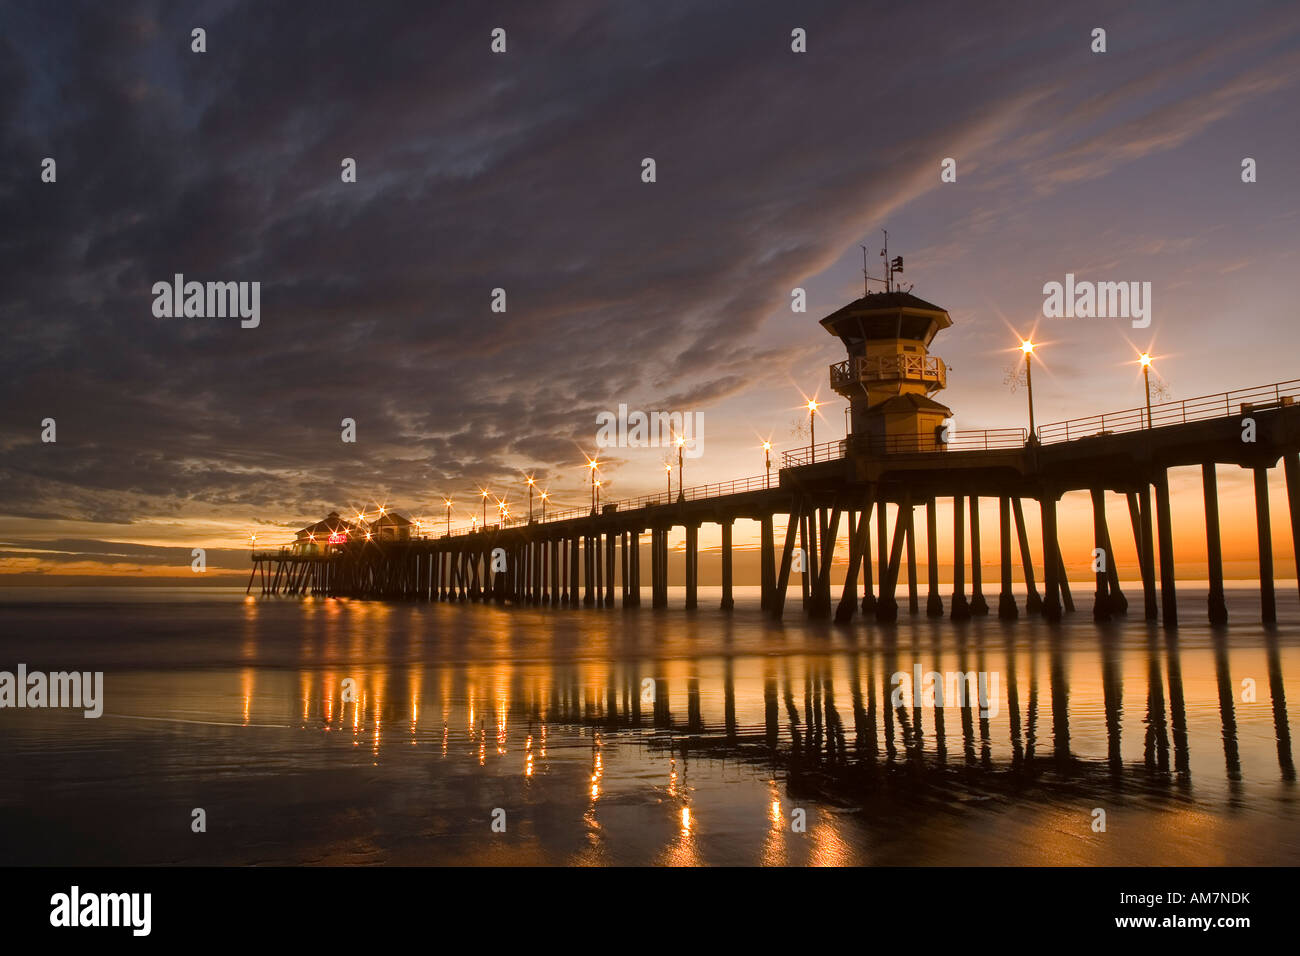 Huntington Beach Pier At Sunset Stock Photo 15176046 Alamy